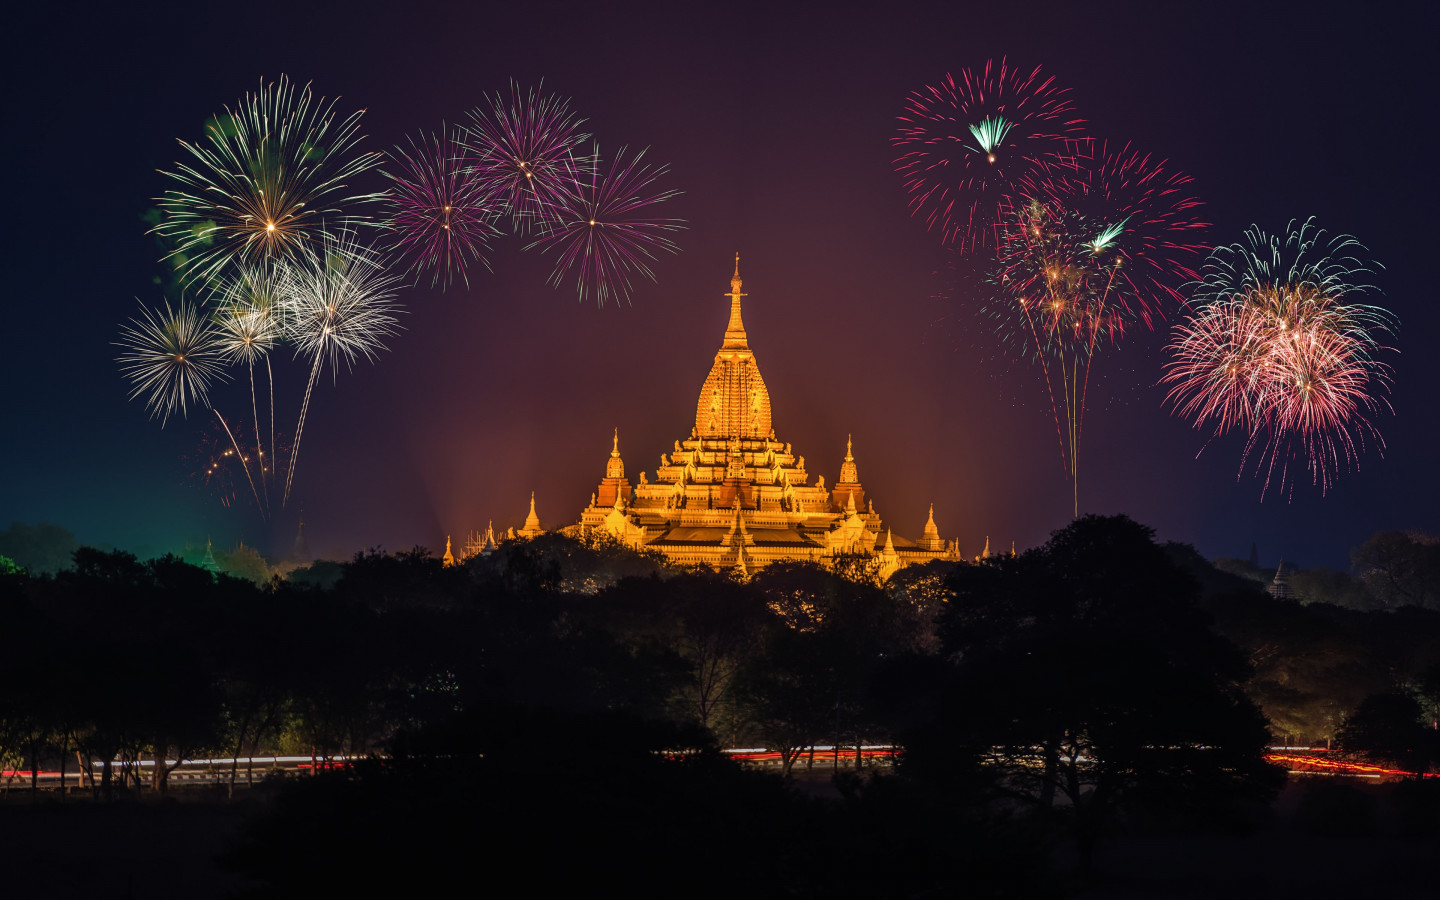 Fireworks above Ananda Phato temple | 1440x900 wallpaper